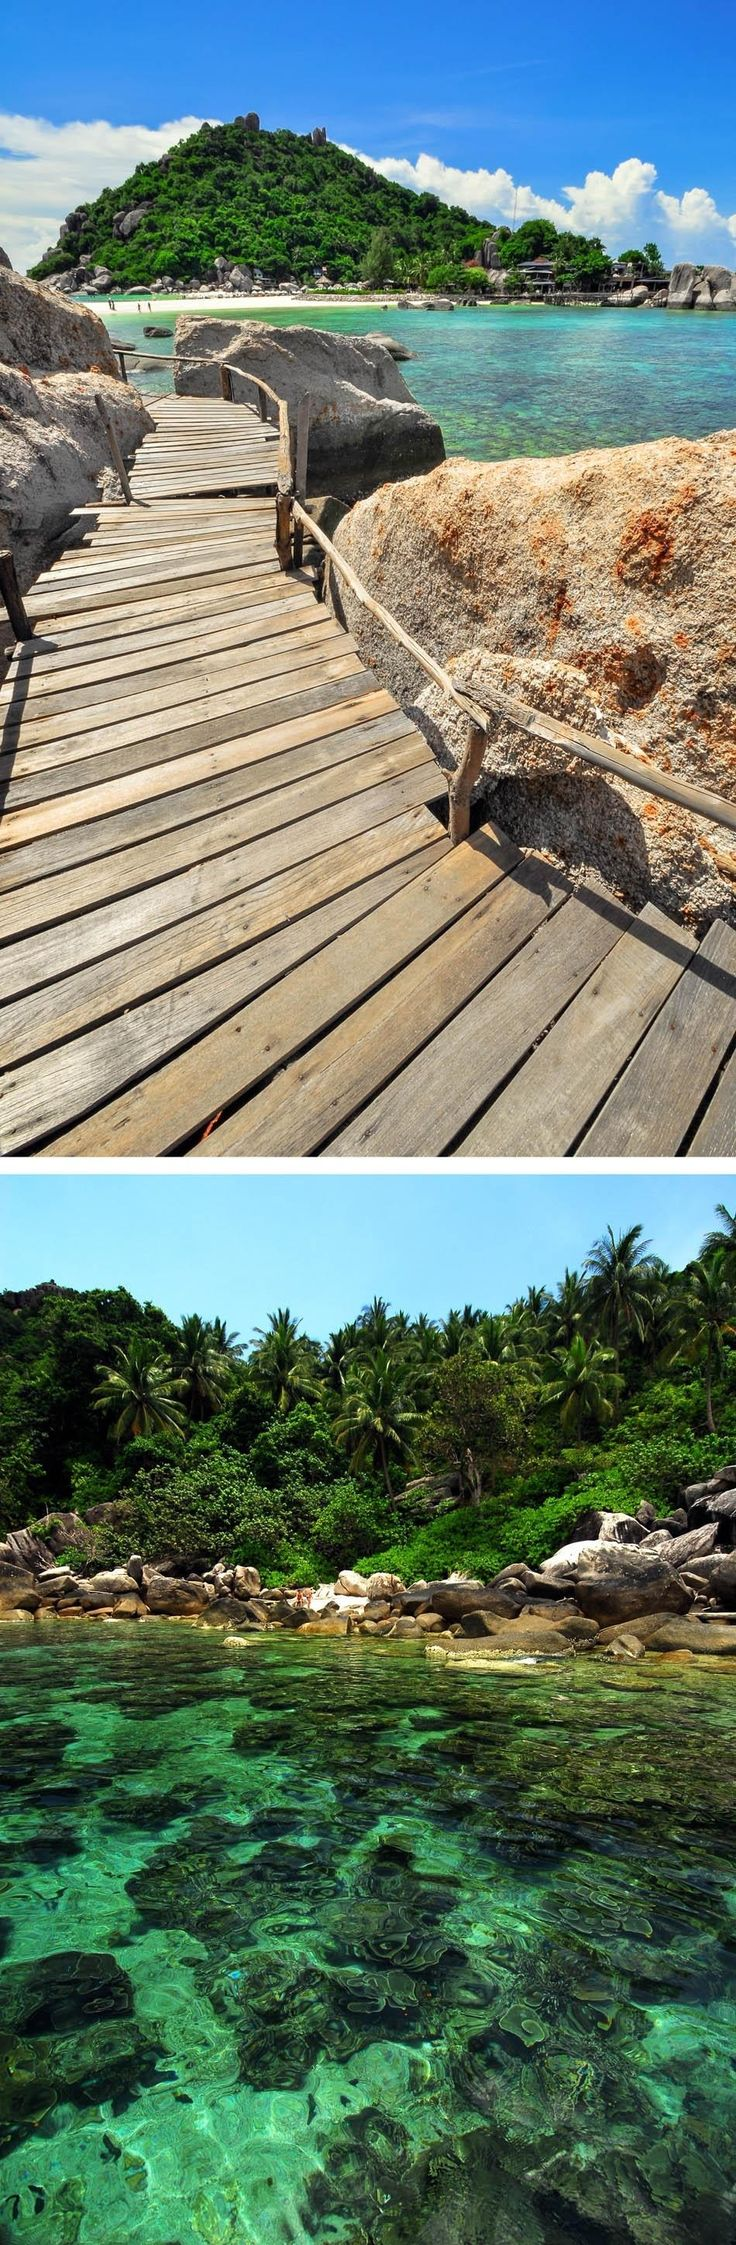 KO Tao, Thailand | Top 10 most beautiful islands in the world